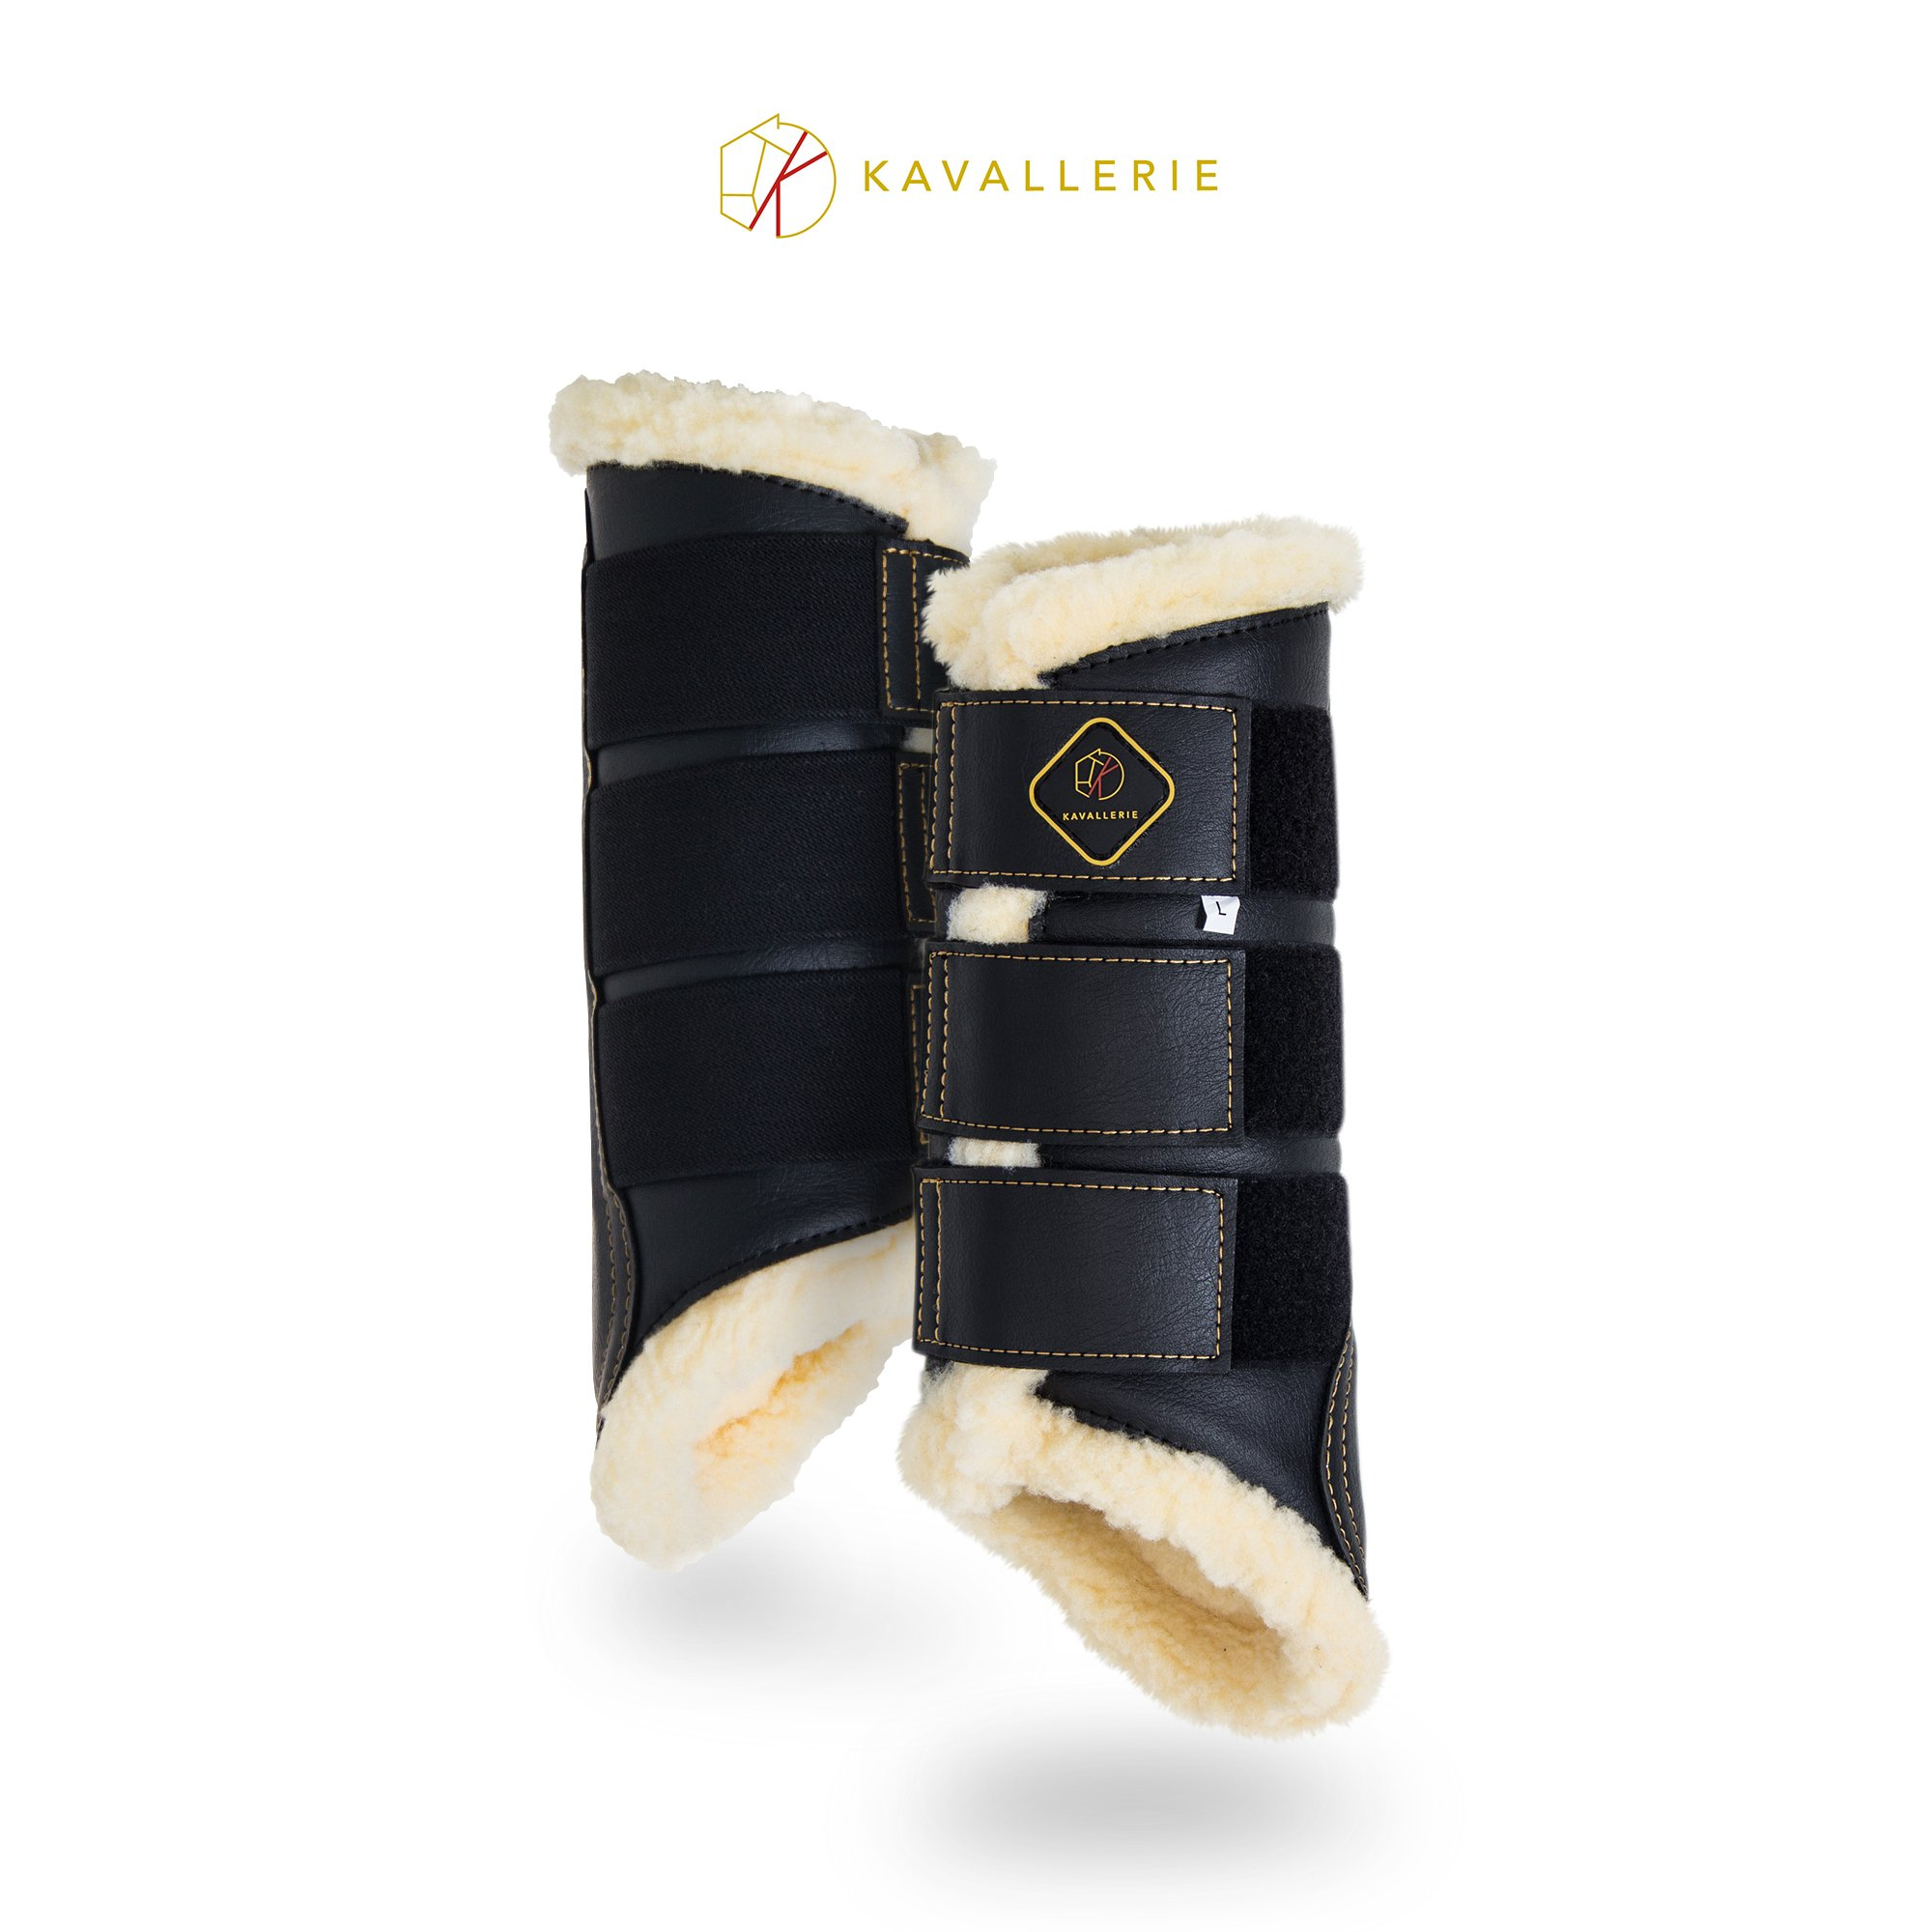 Kavallerie Dressage Horse Boots: Fleece-Lined Faux Leather Brushing Boots for Training, Jumping, Riding, Eventing - Breathable, Lightweight & Impact-Absorbing Black